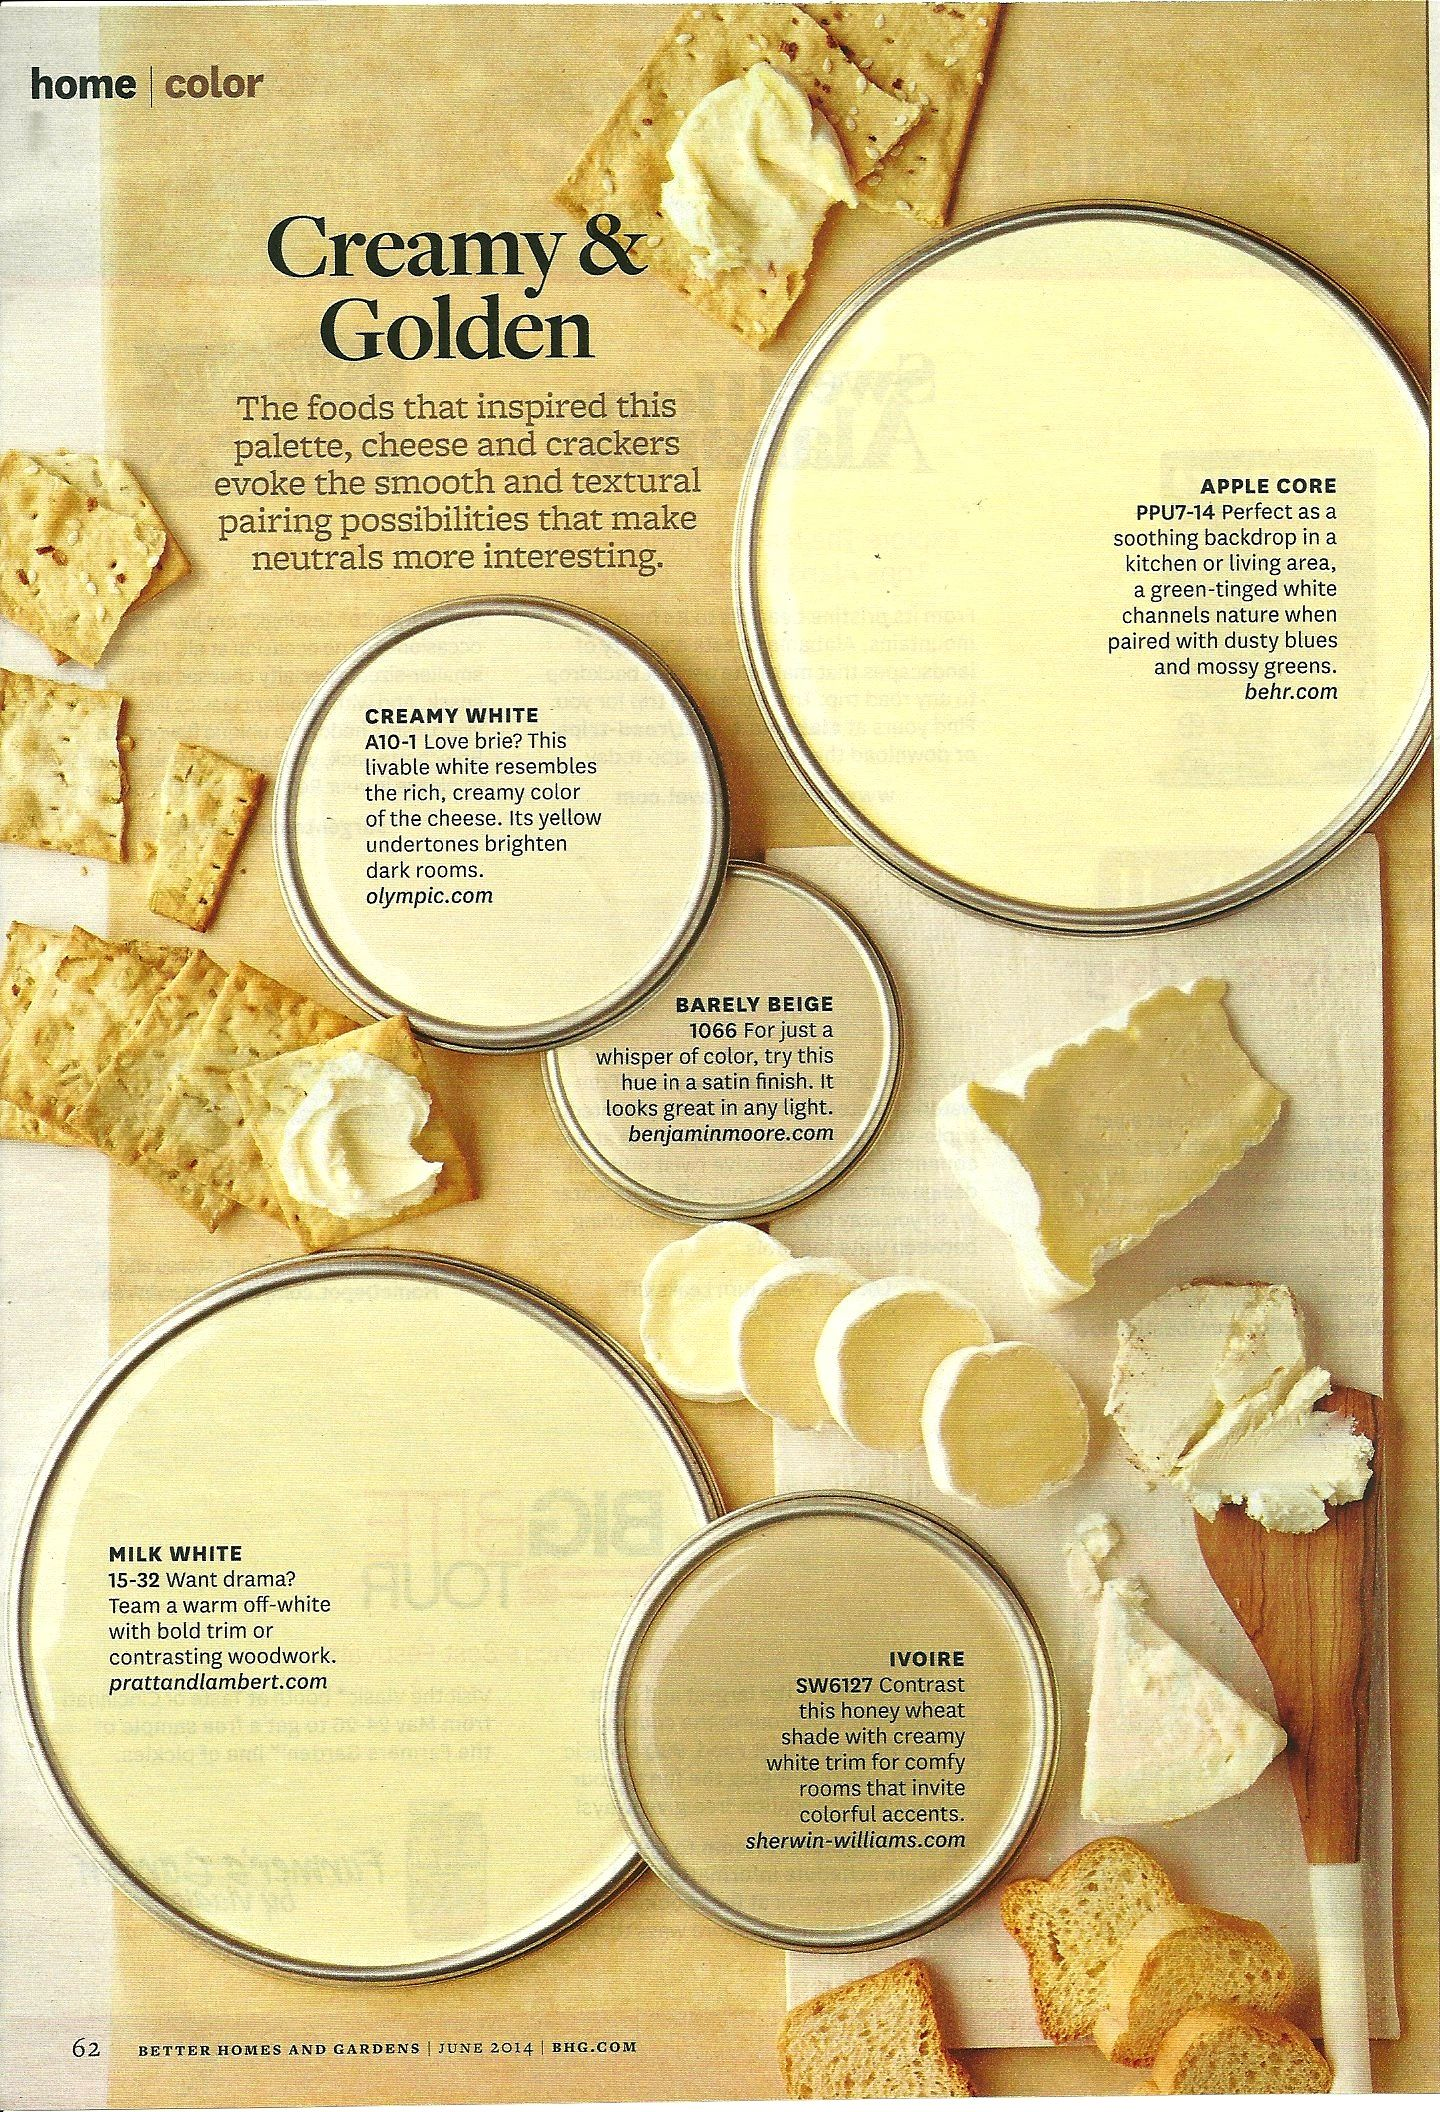 Cream and Golden - BHG | COLOR | Pinterest | Decorating, Room colors ...